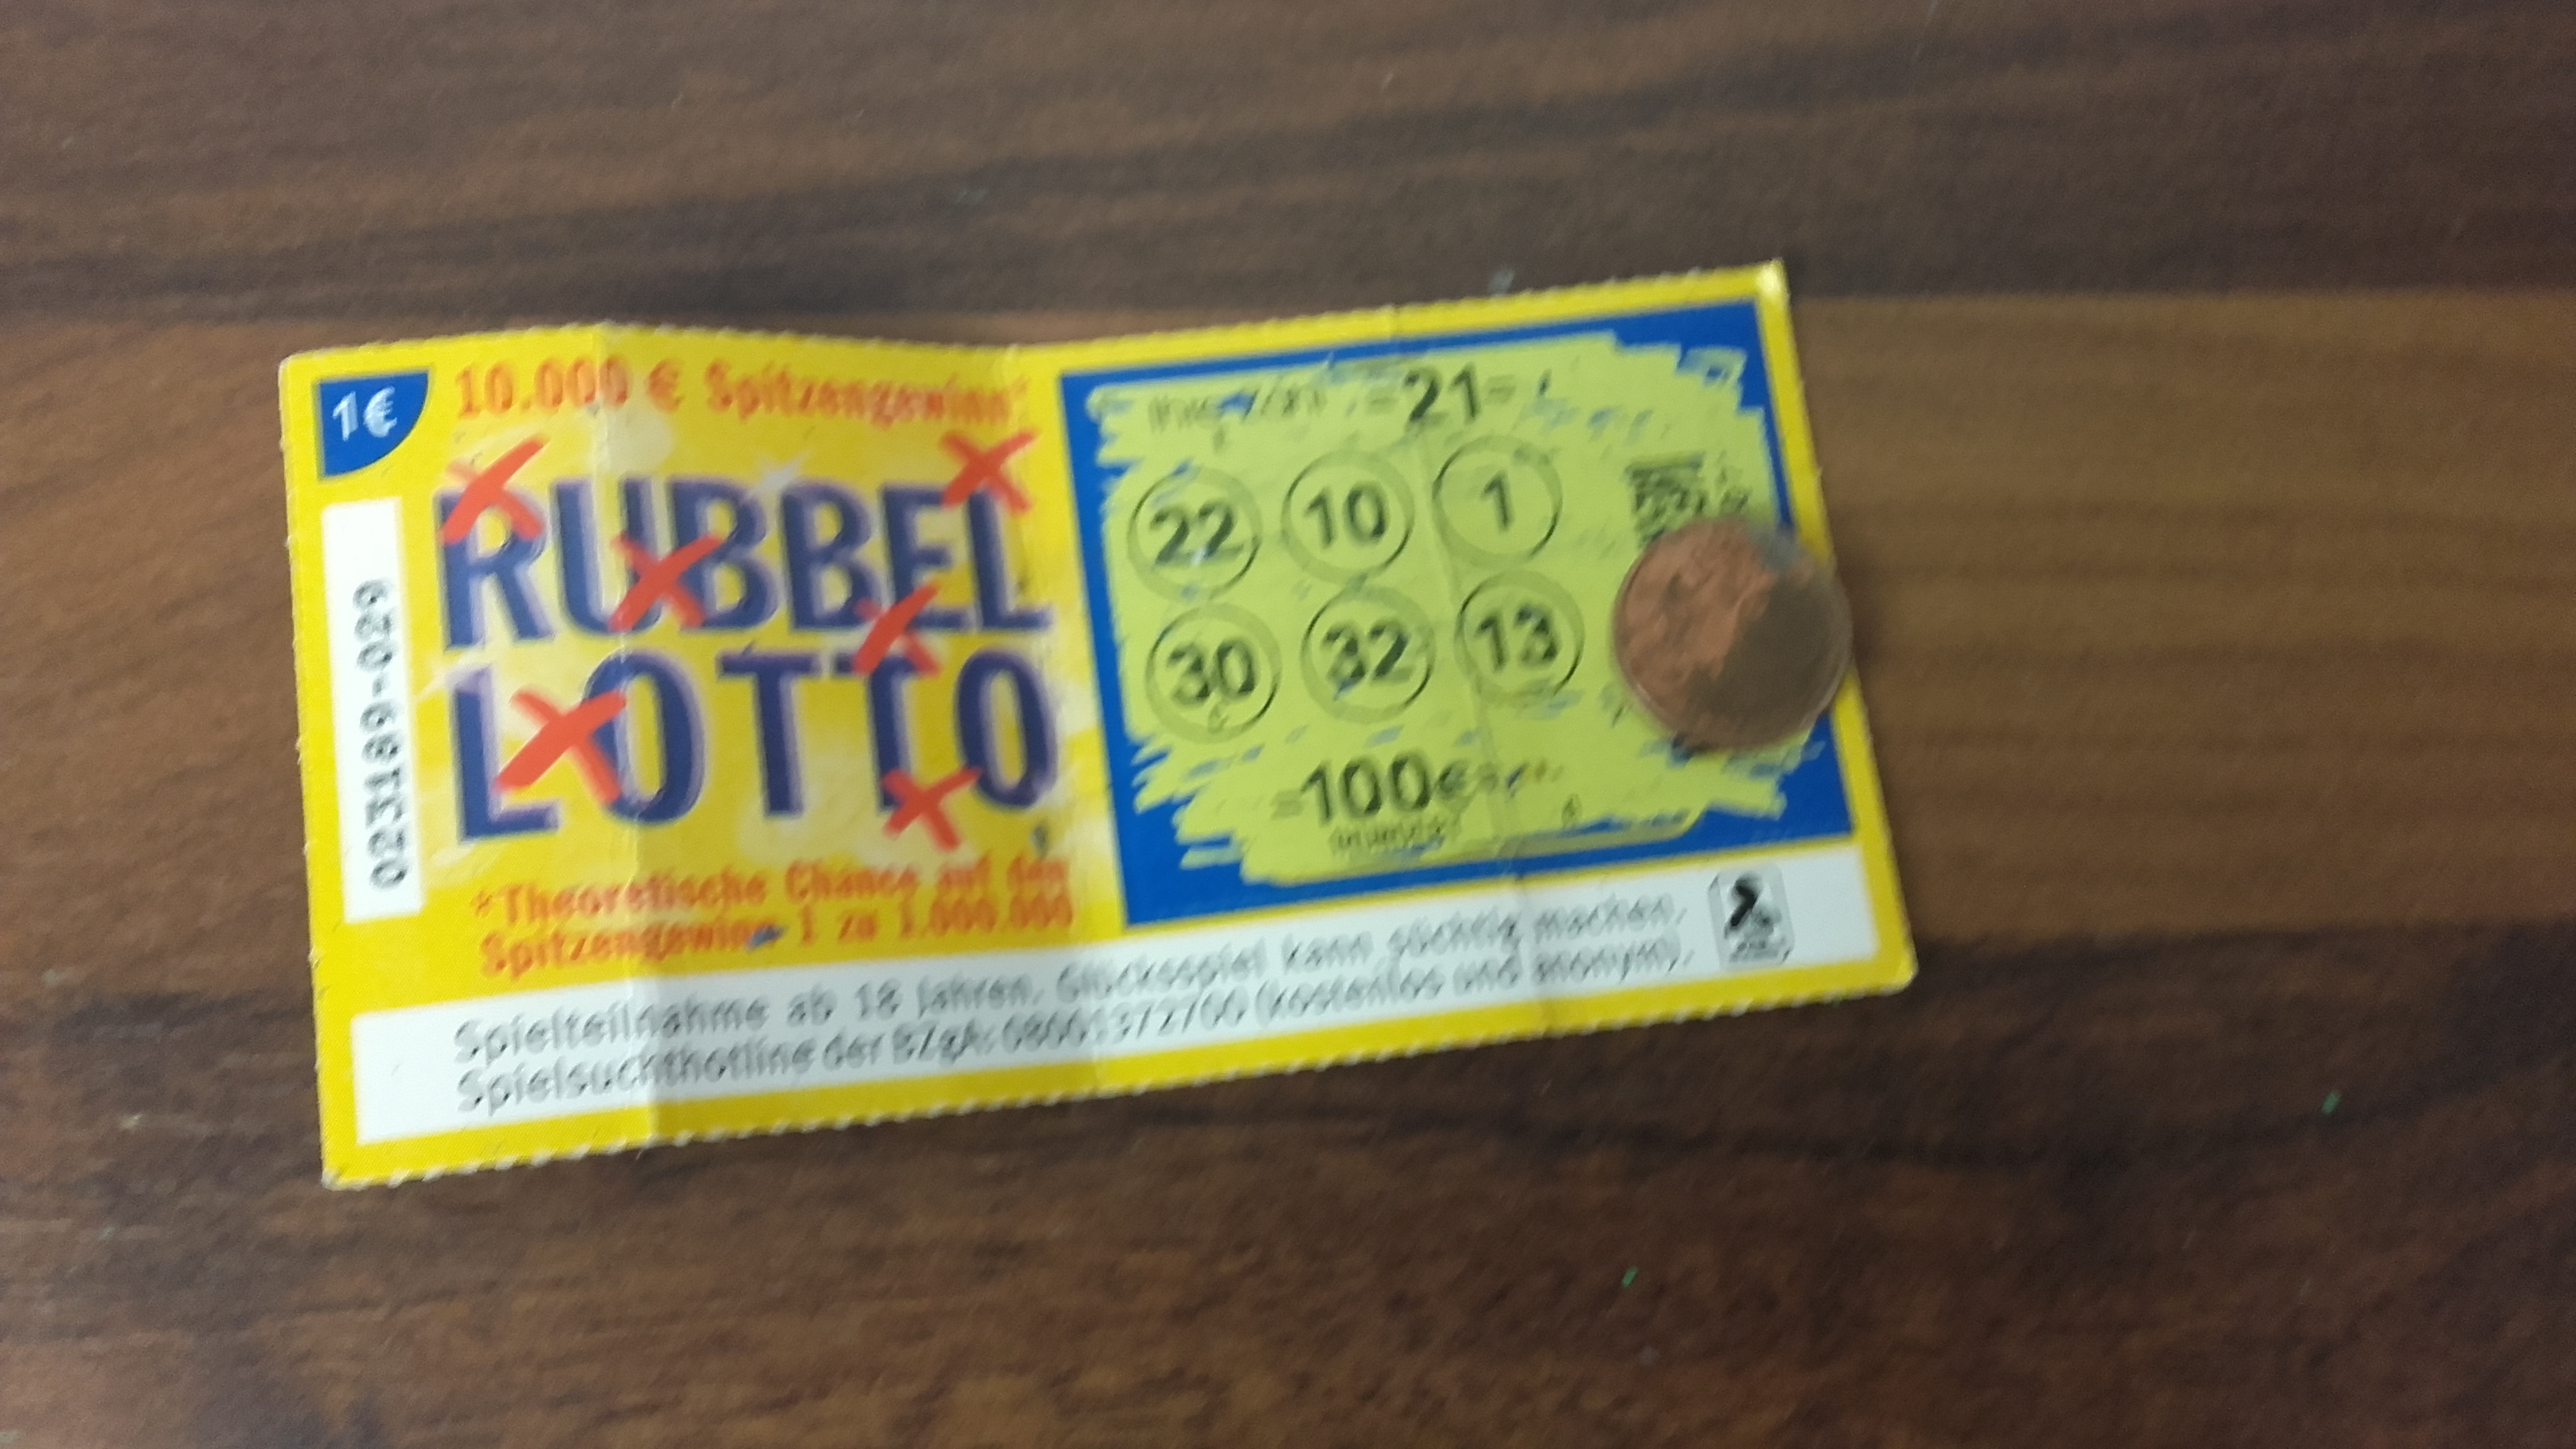 Rubbel Lotto